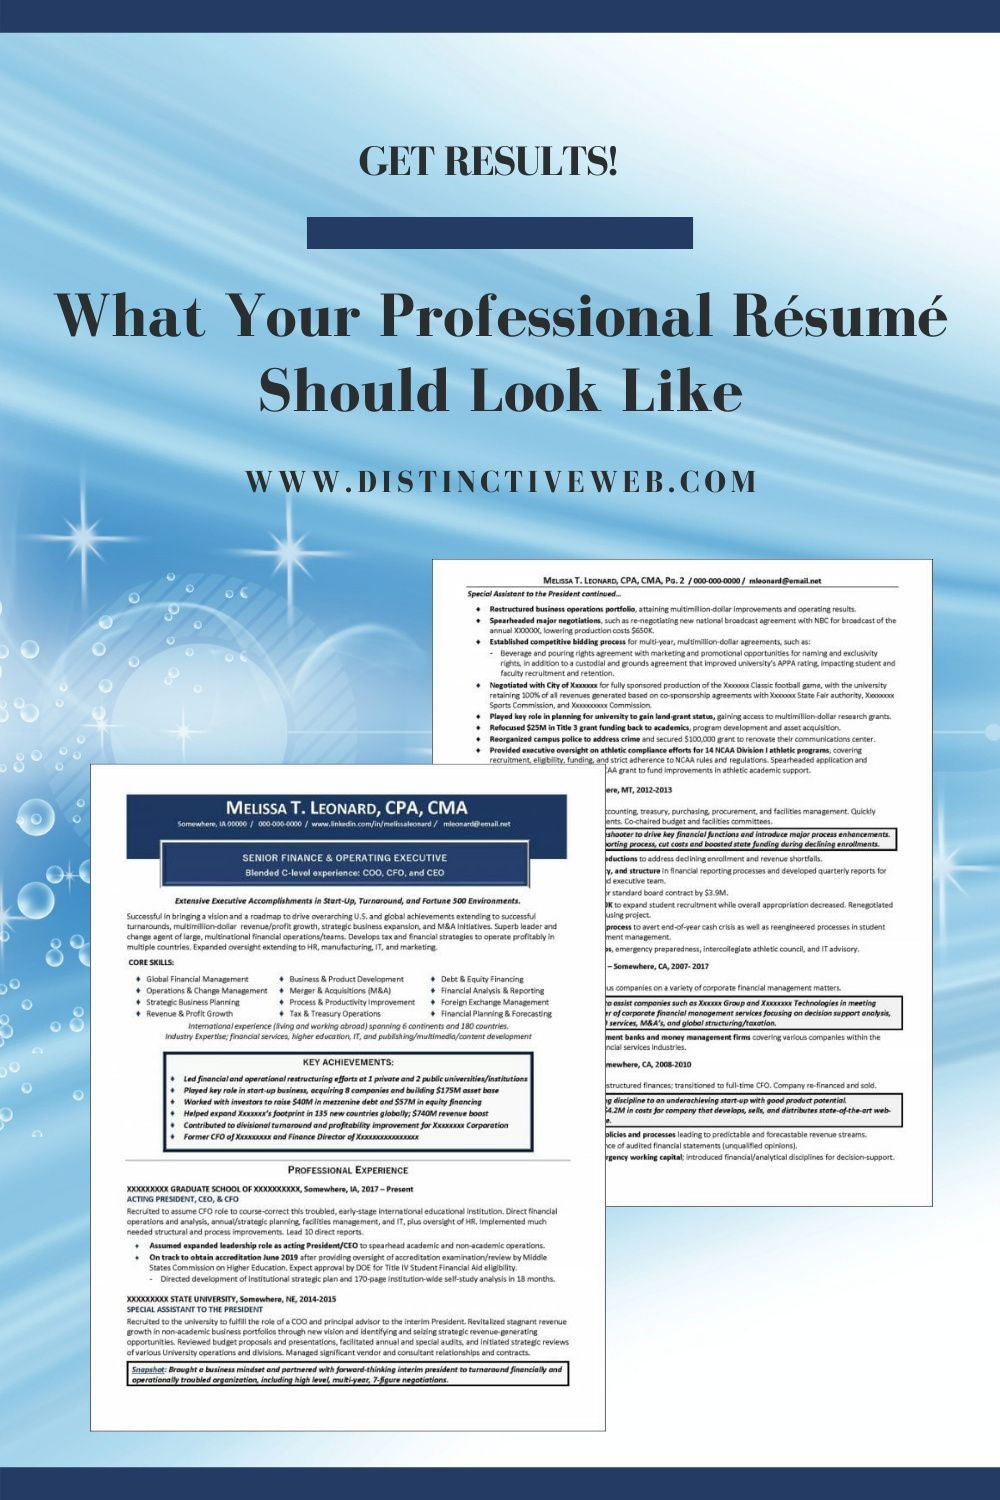 Professionally Written Resumes That Get Results in 2020